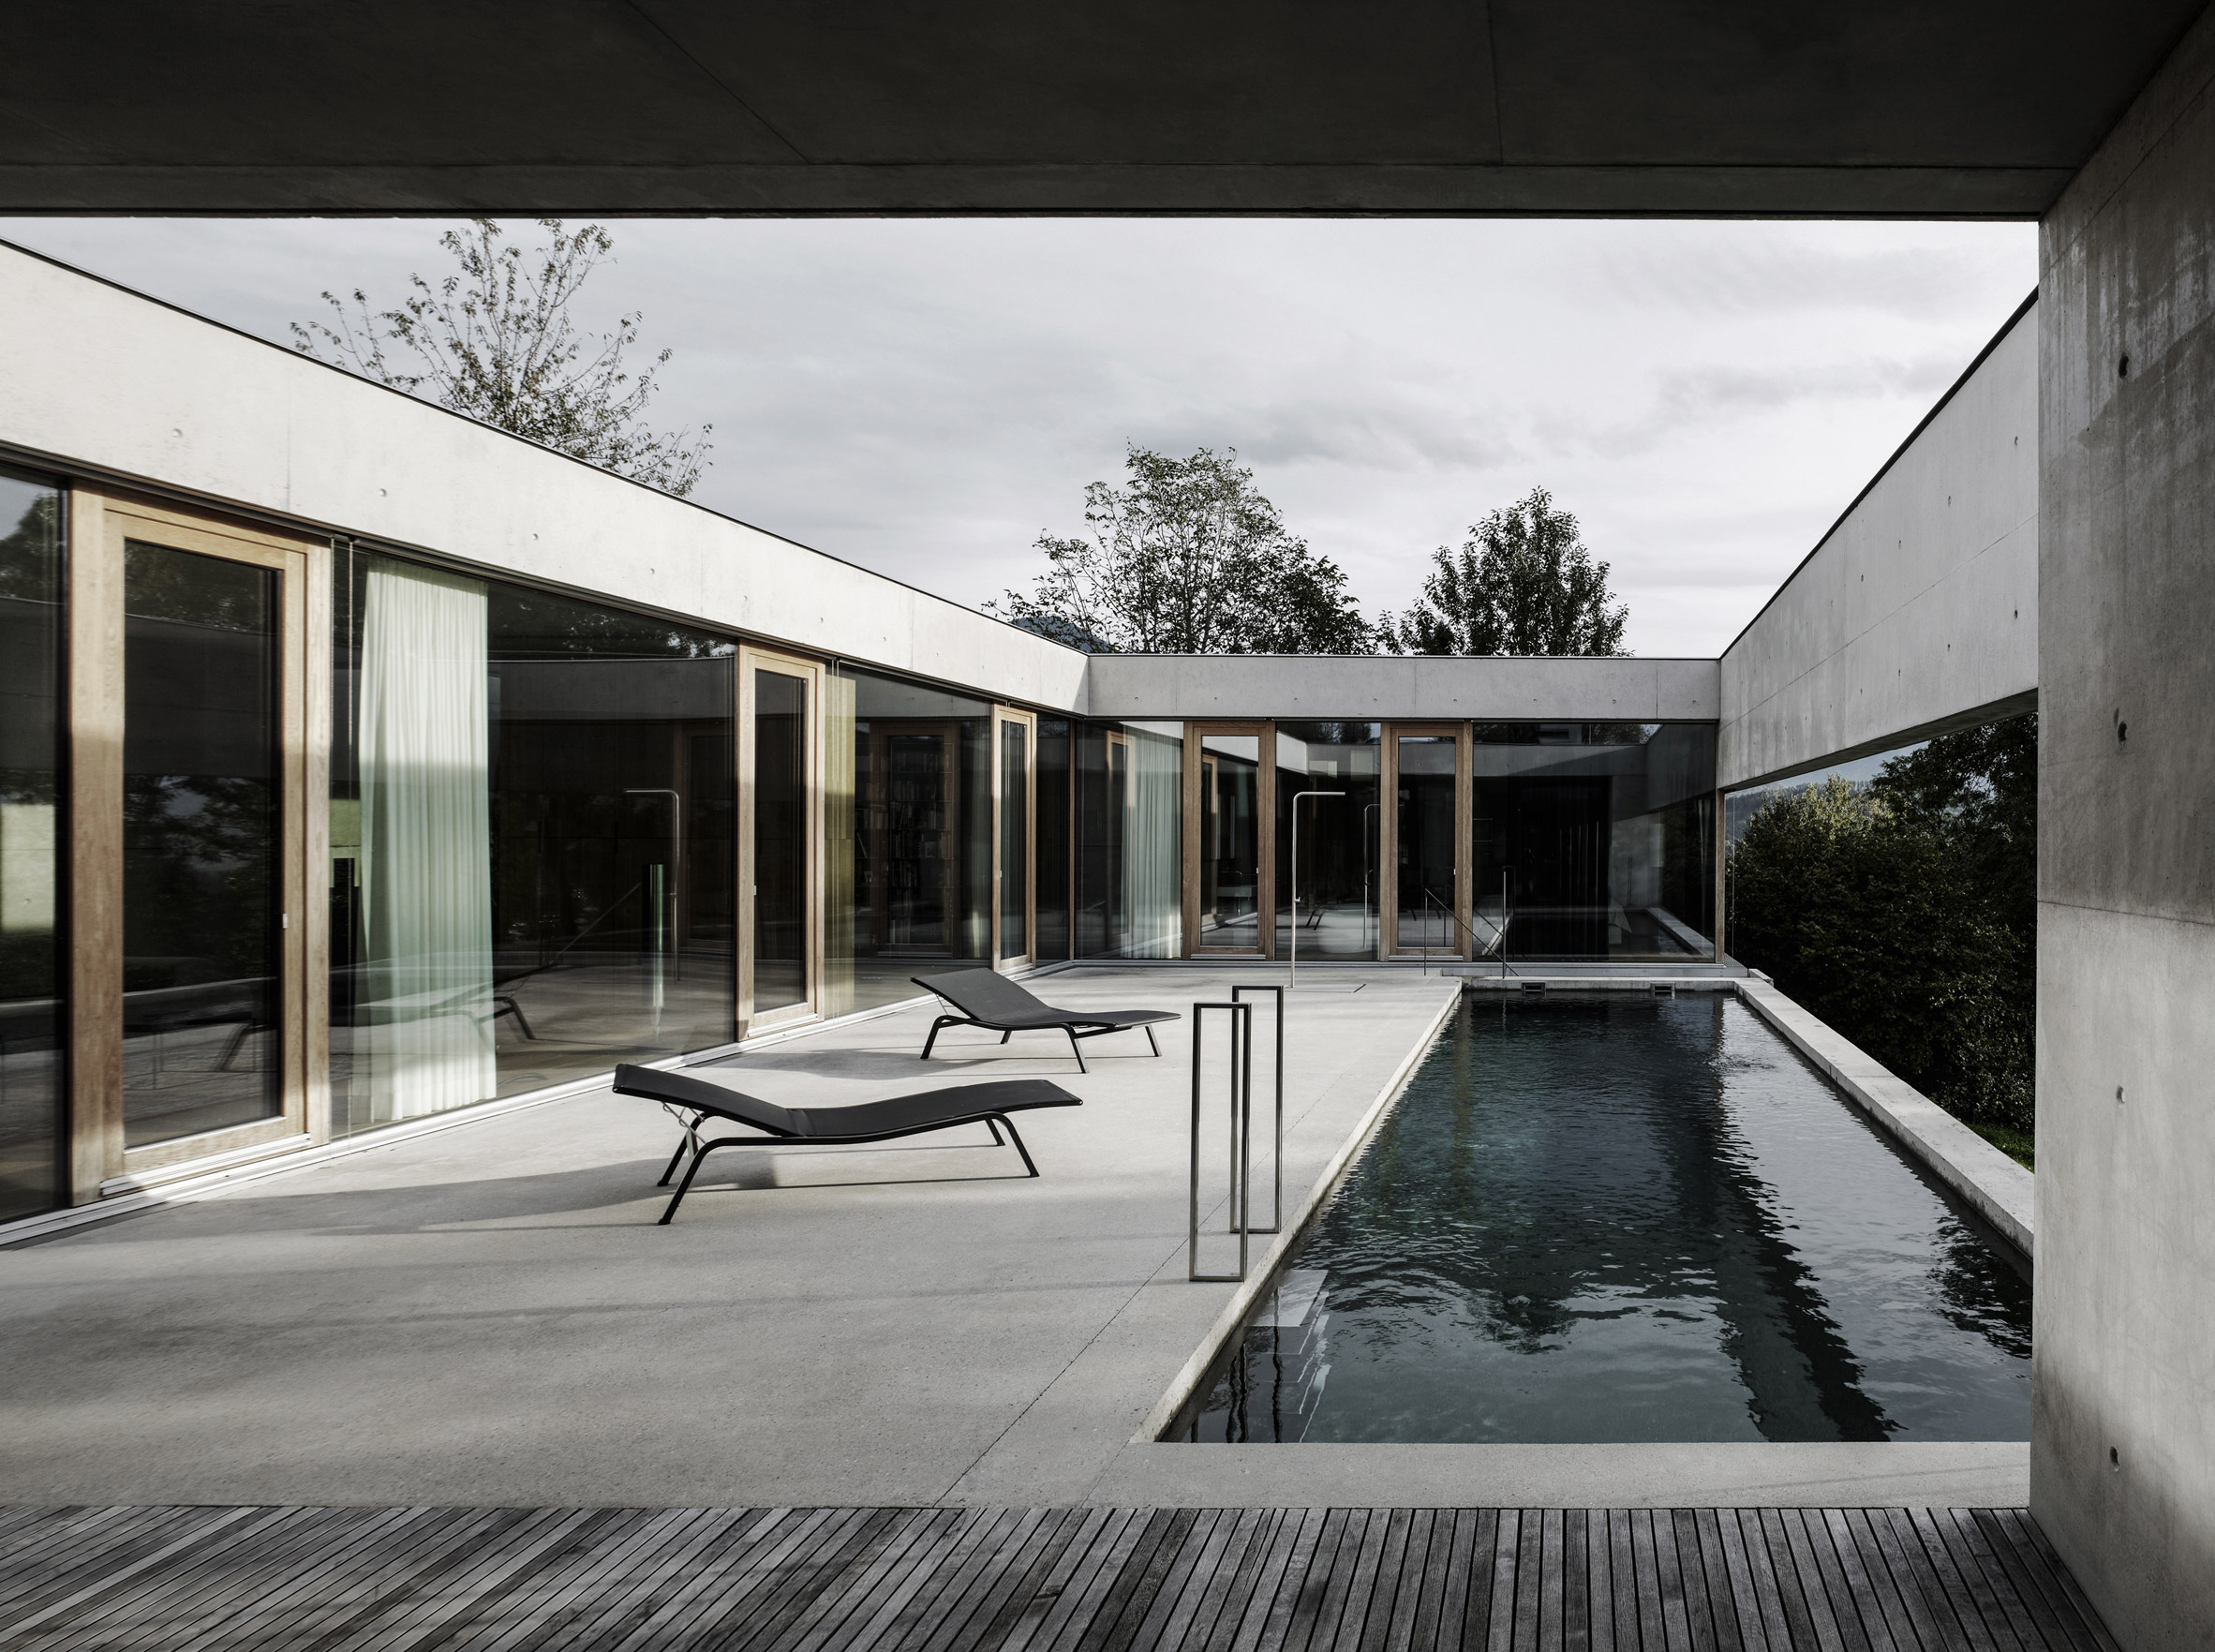 Concrete house by Marte.Marte Architects features pool with views of Rhine Valley